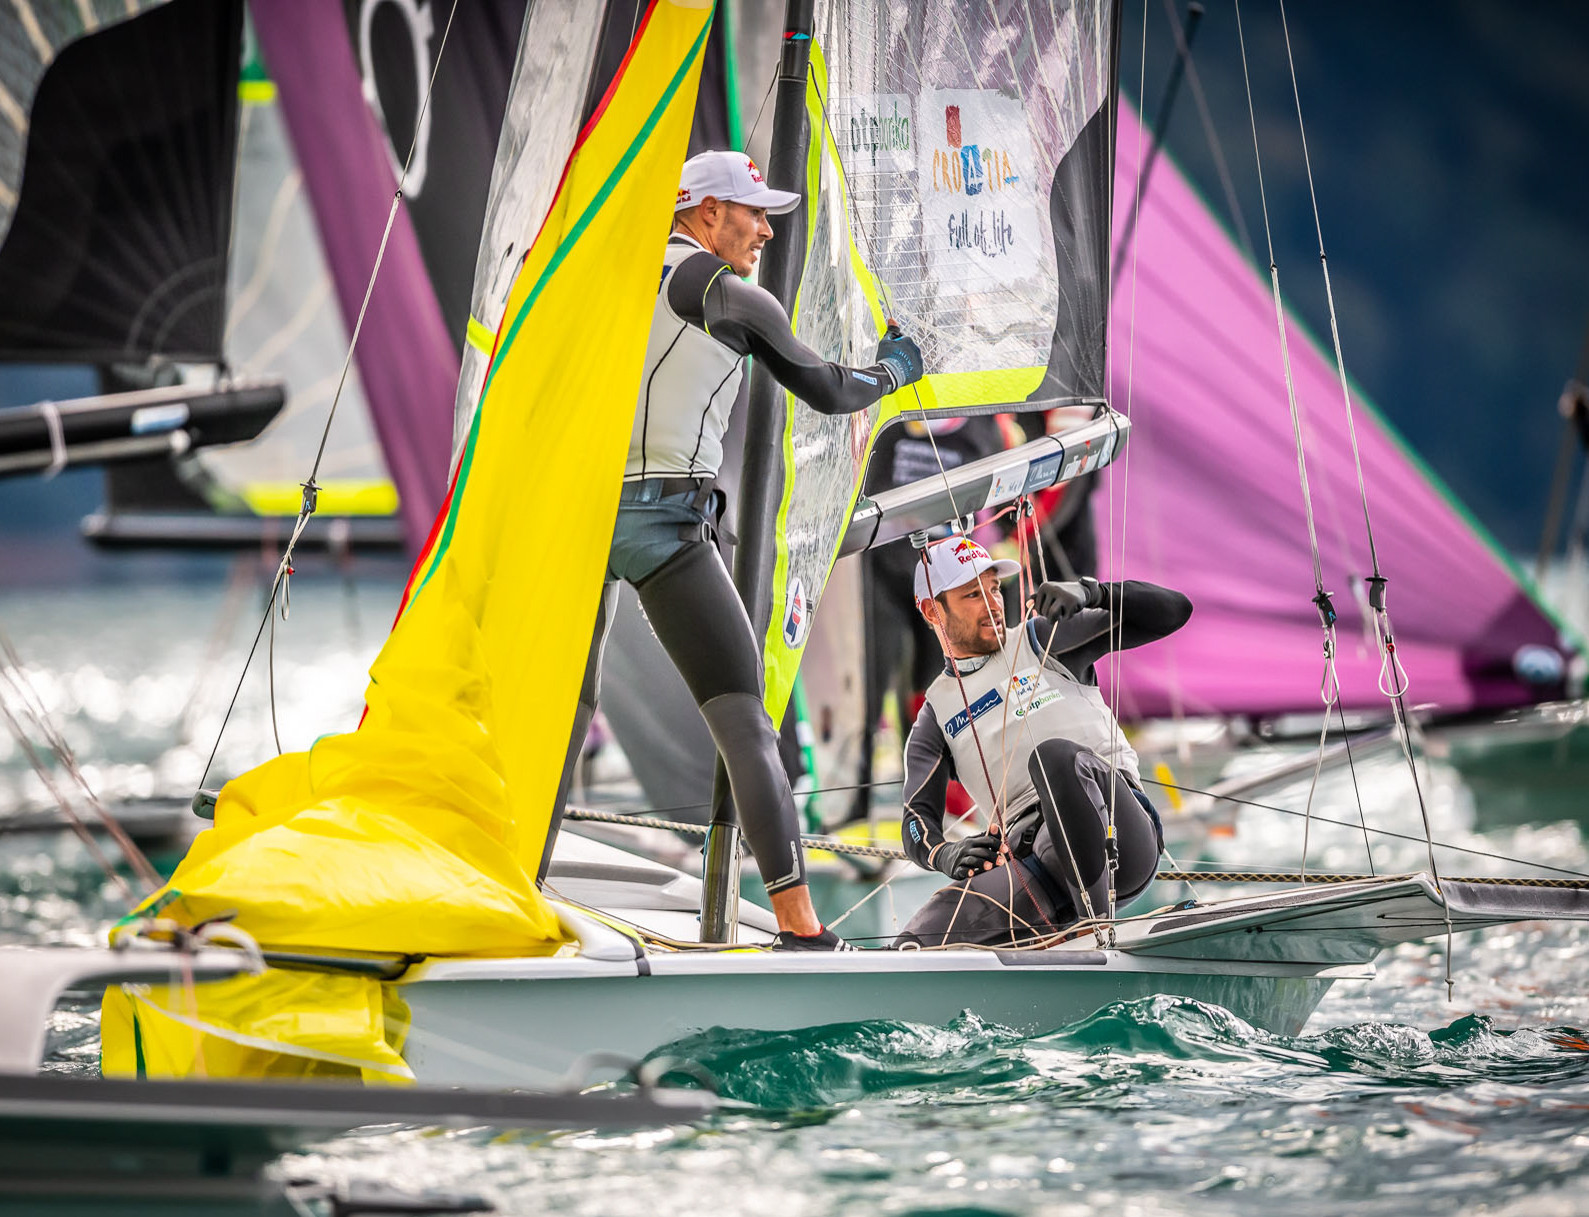 Croatian brothers Šime and Mihovil Fantela have maintained their lead in the European 49er Championship ©49er